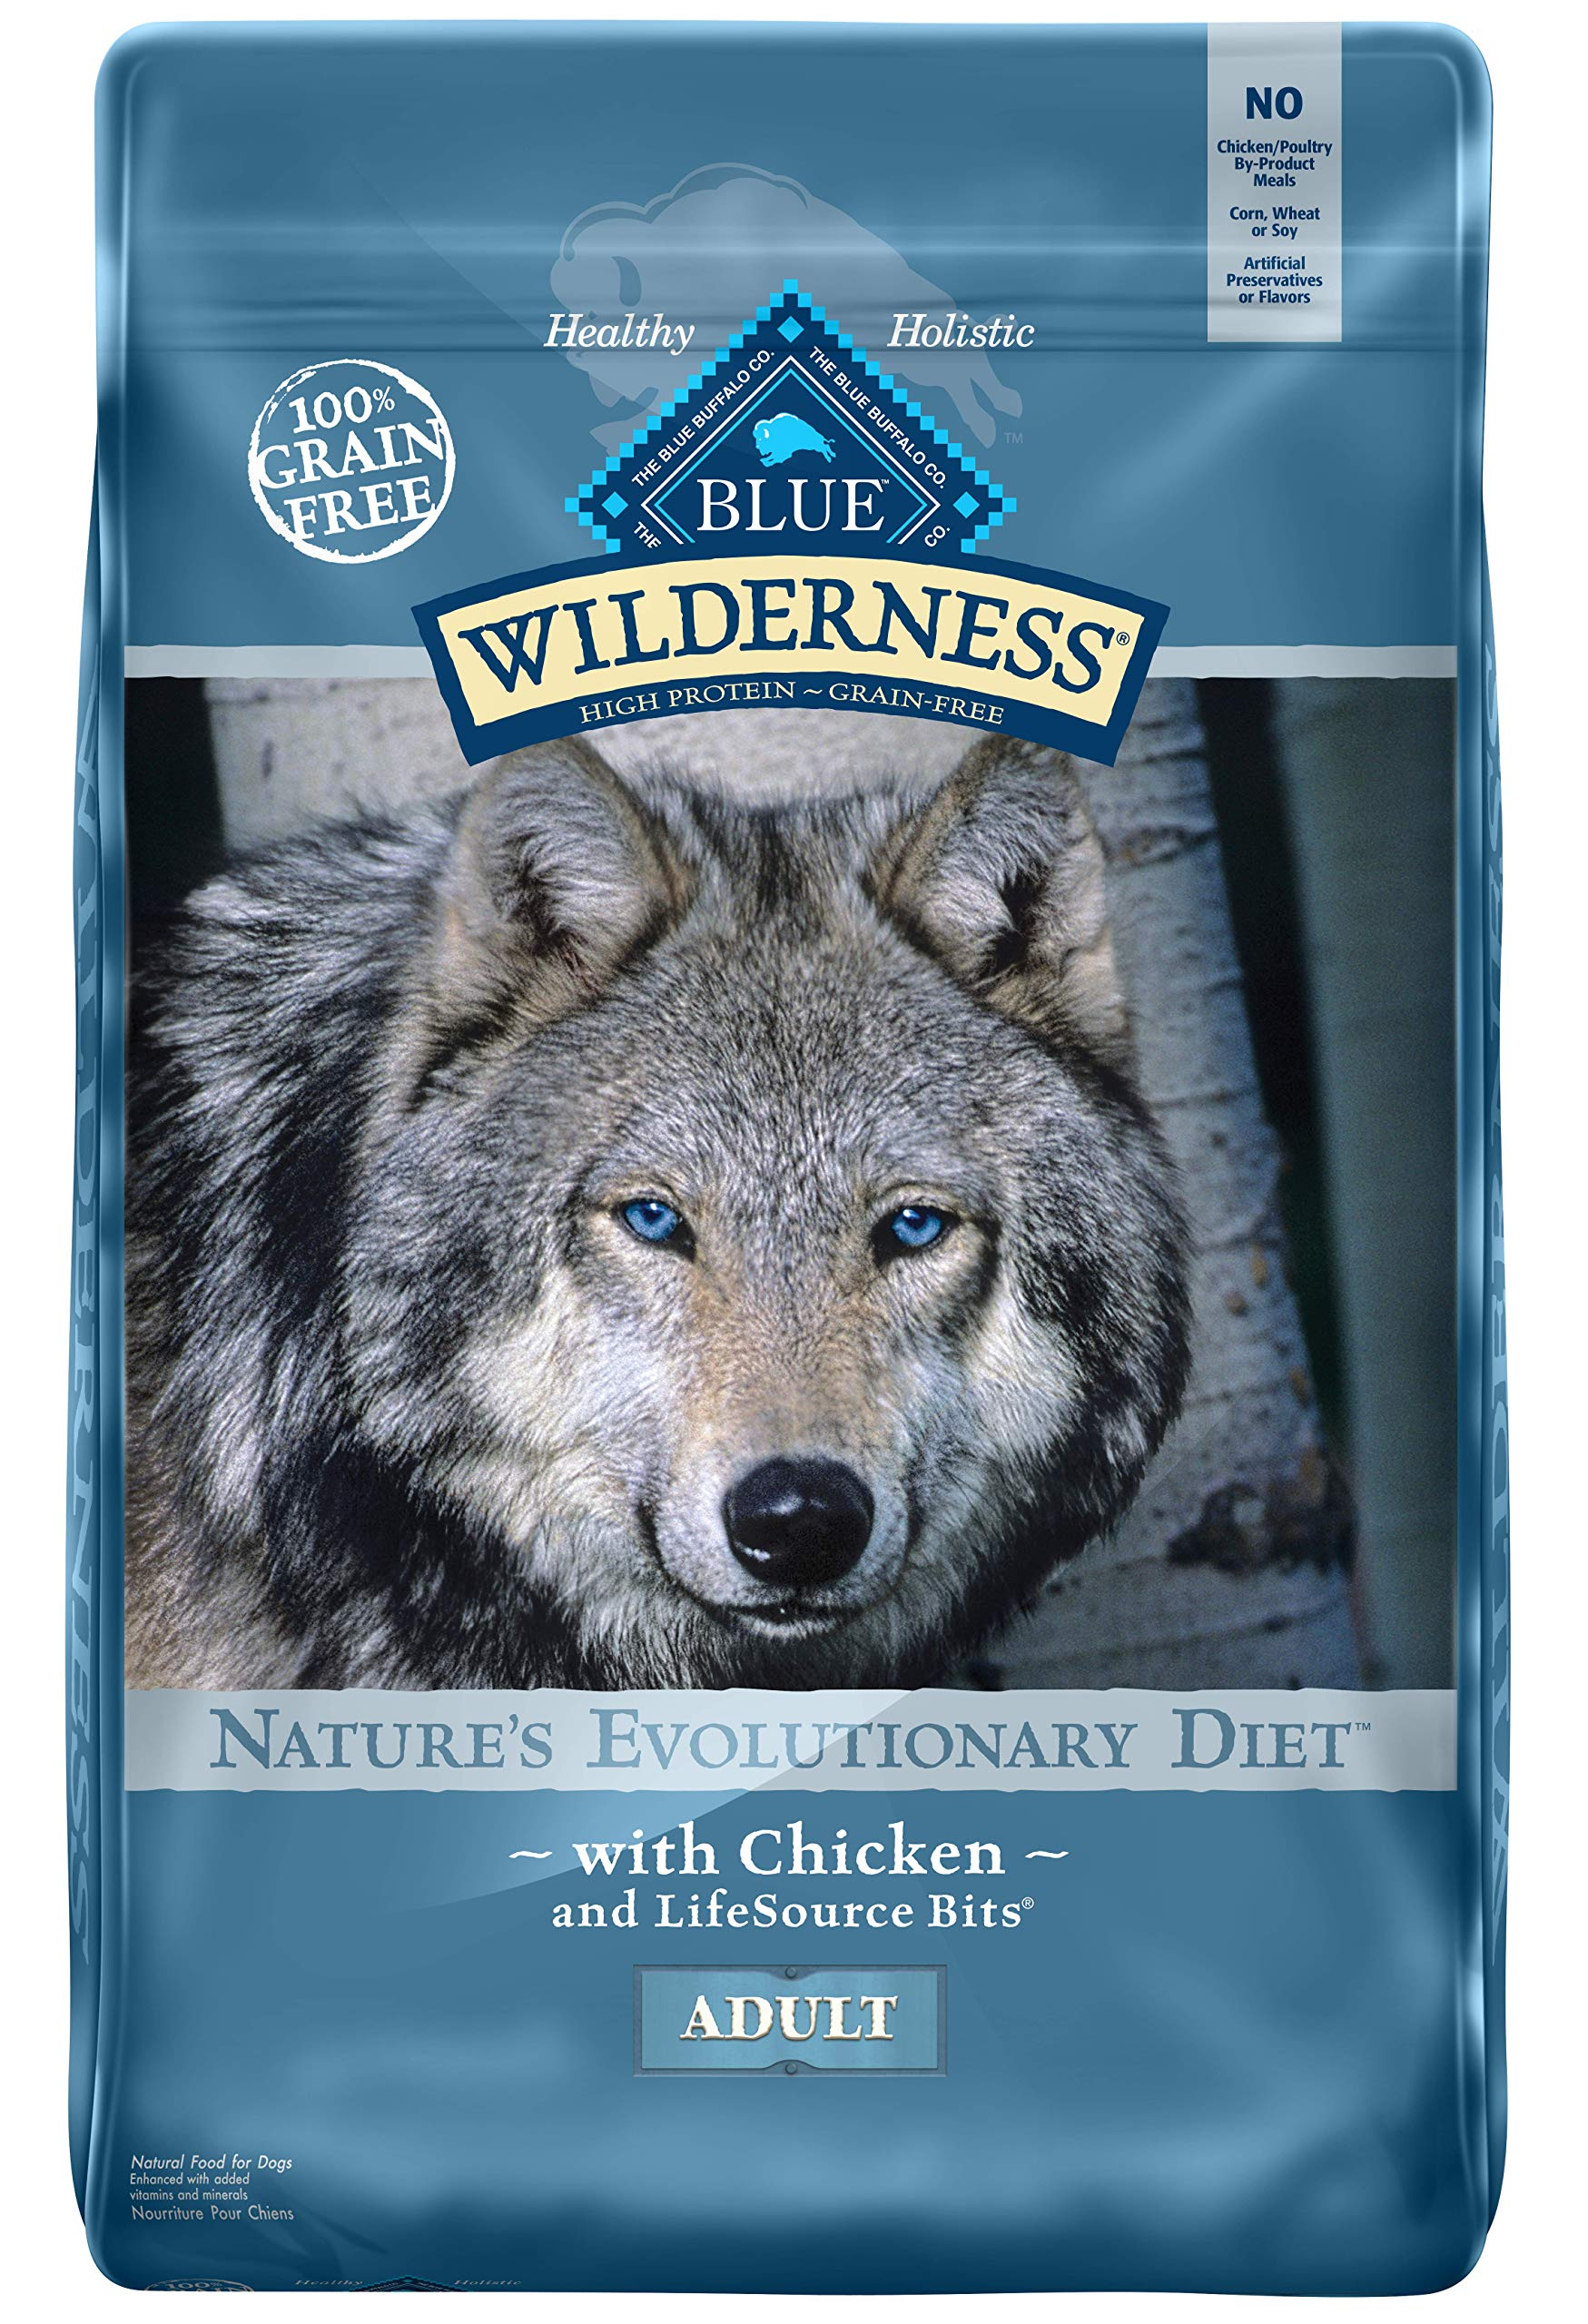 Blue Wilderness High Protein Grain Free Dog Food